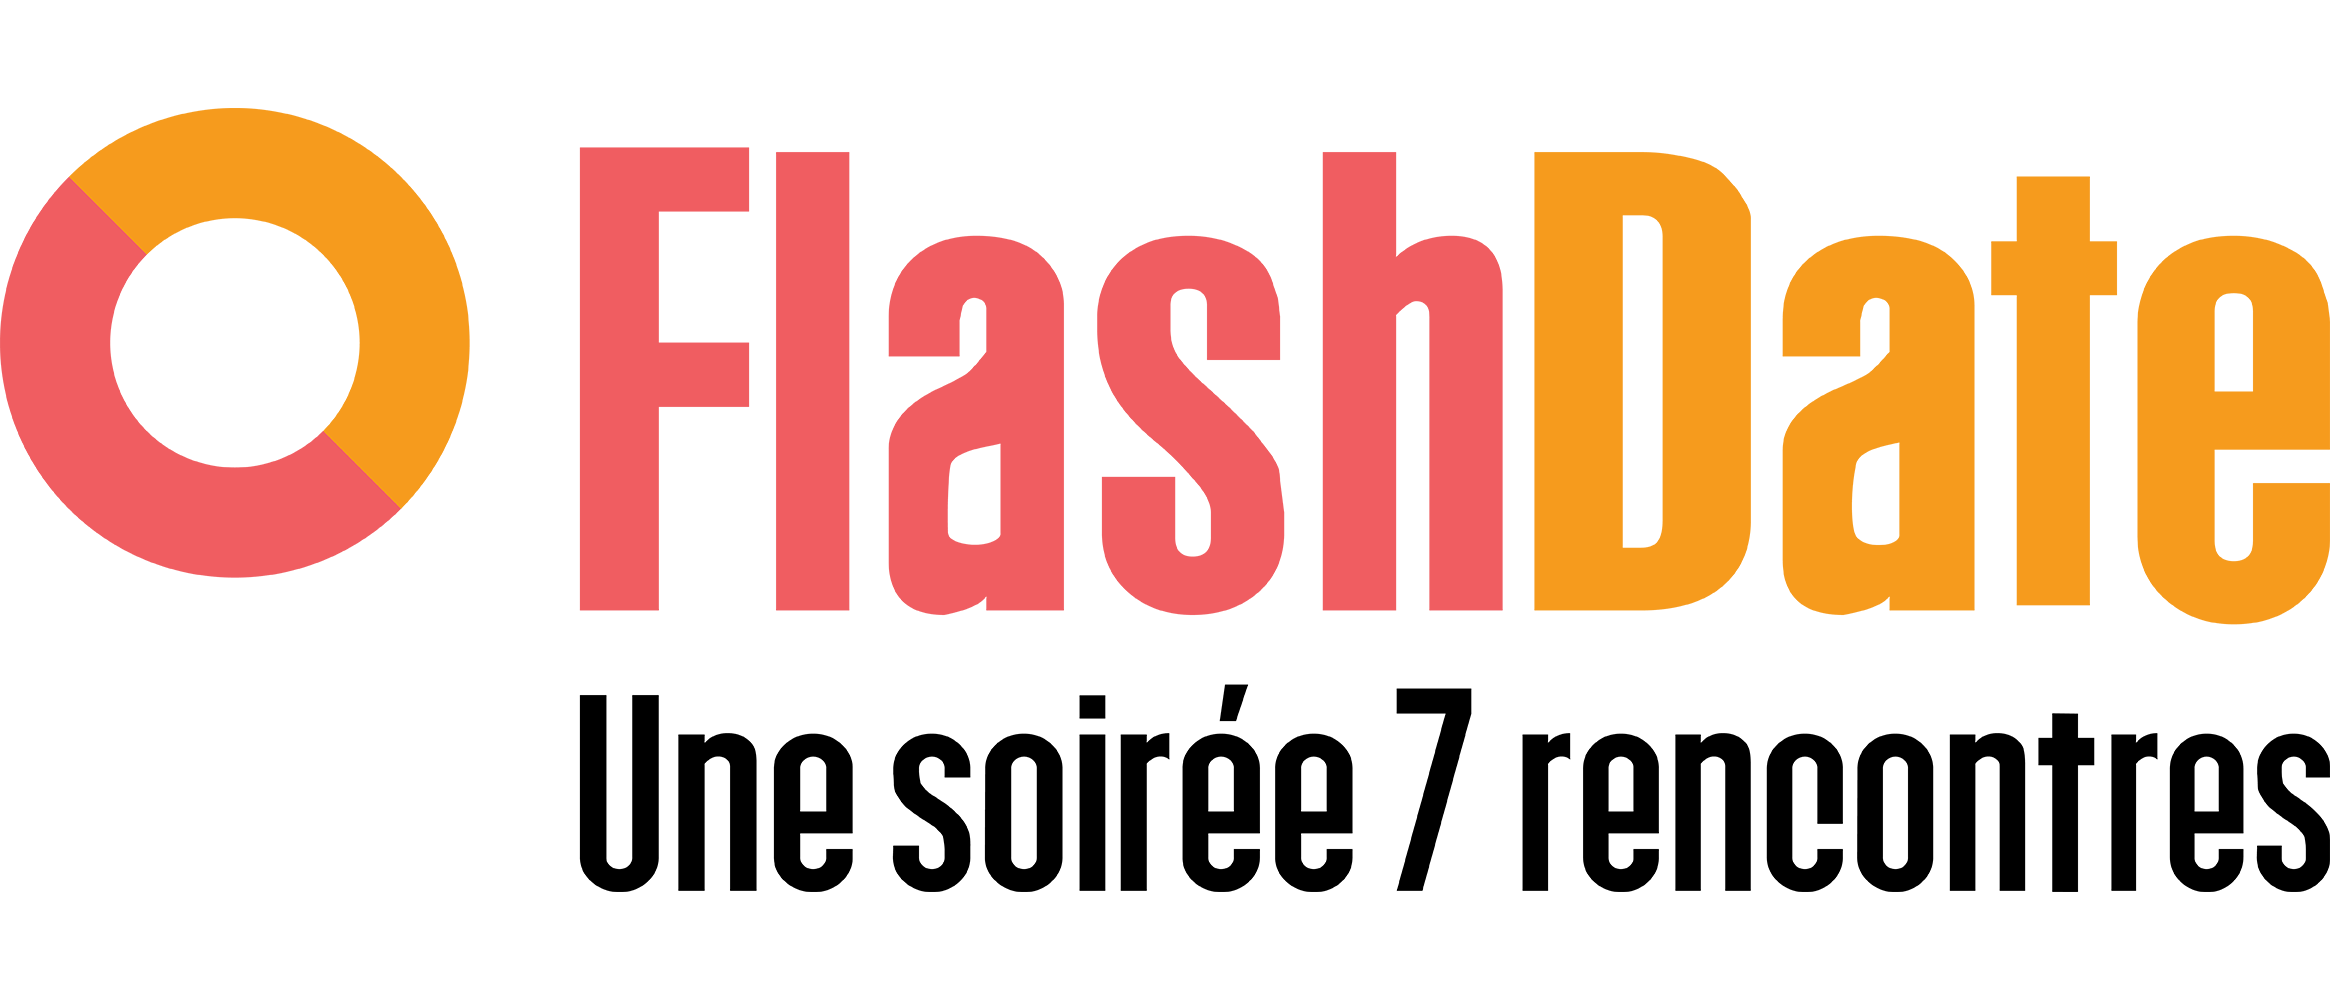 Flashdate.be